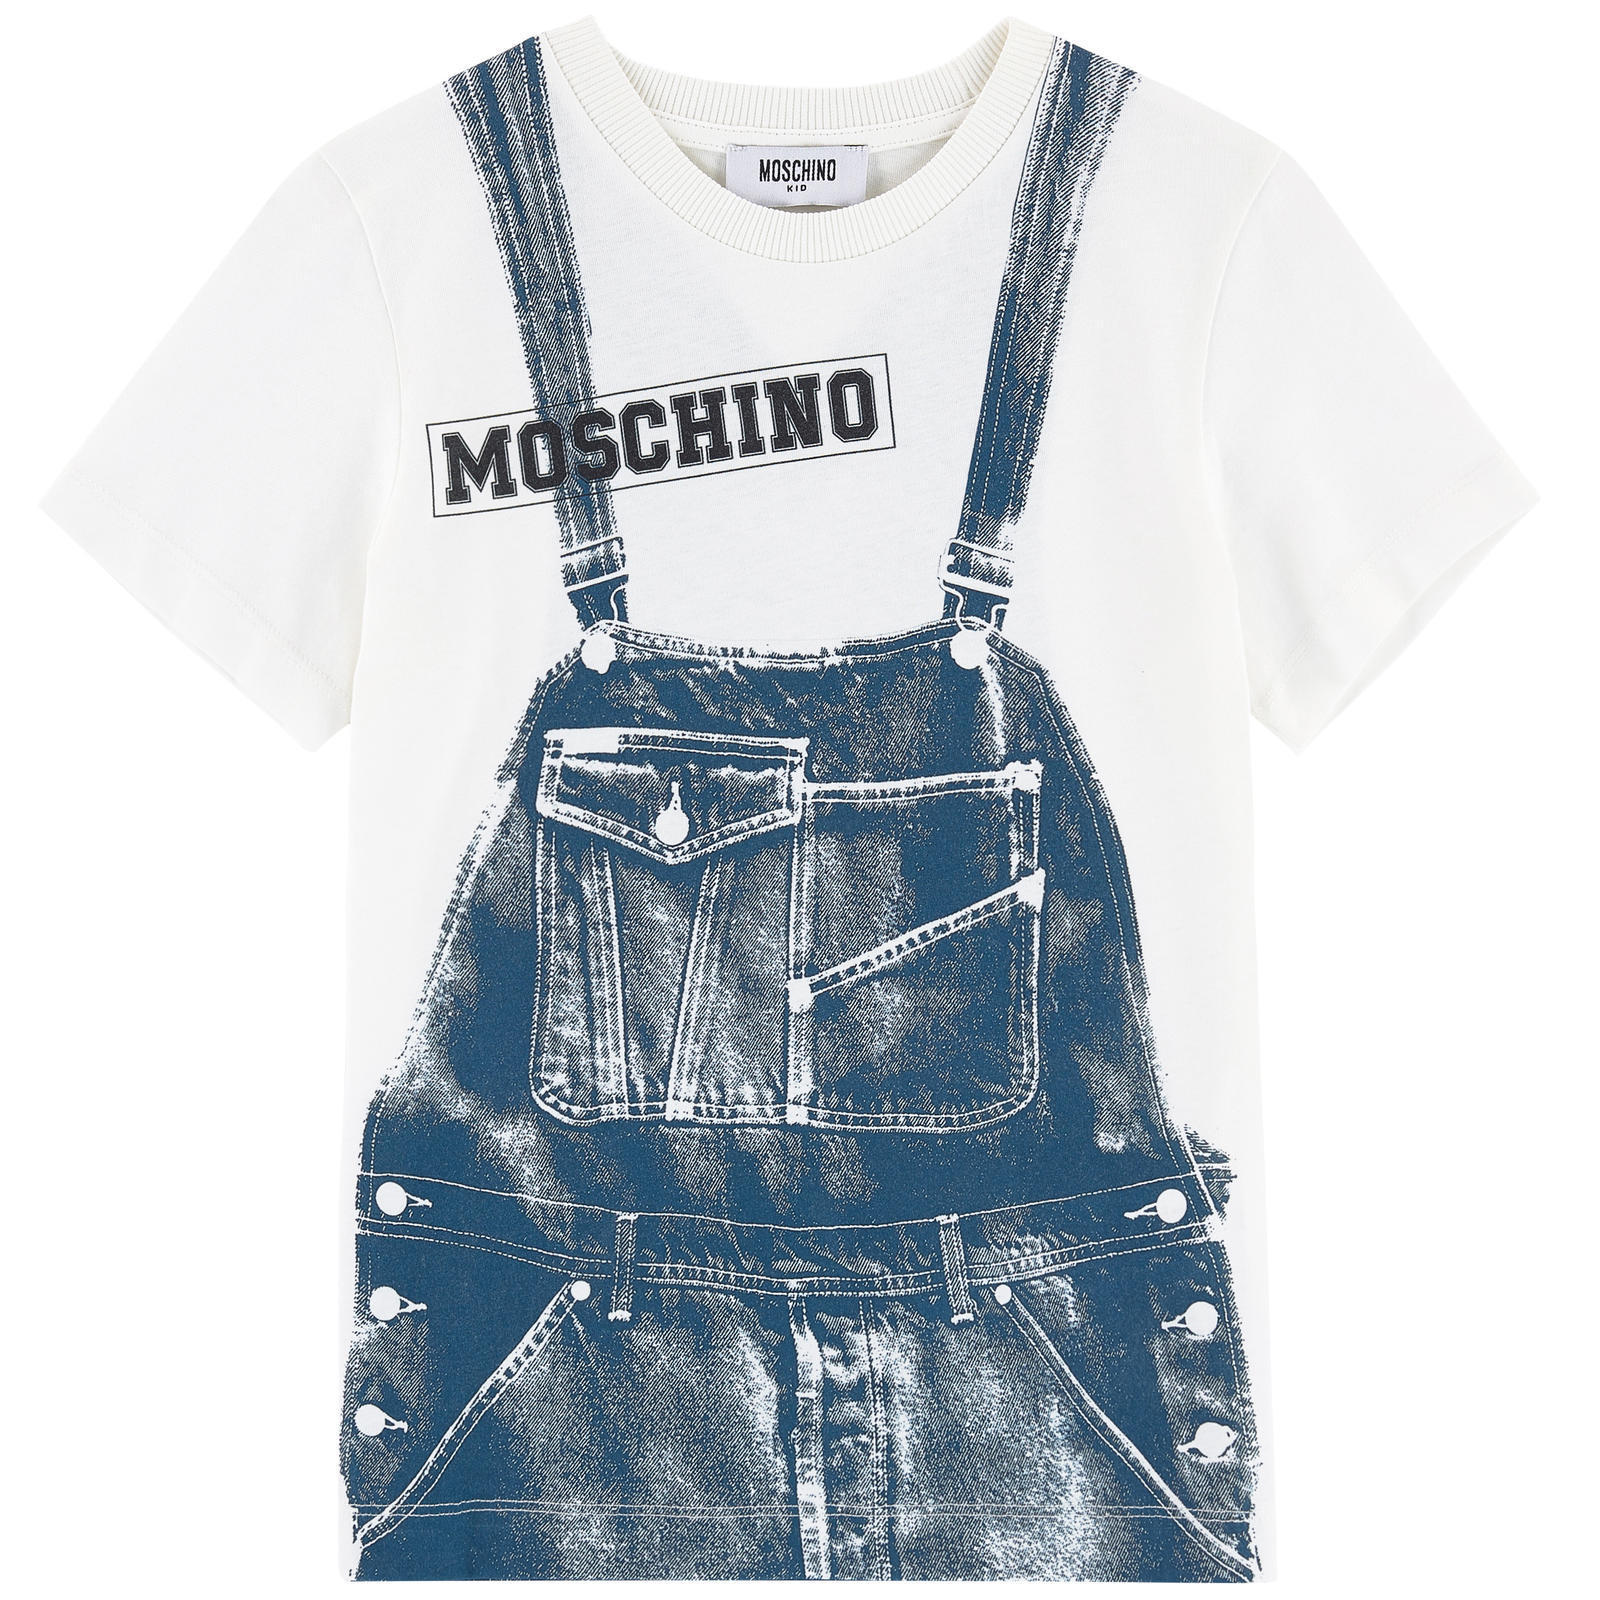 MOSCHINO Tシャツ 4A〜12A